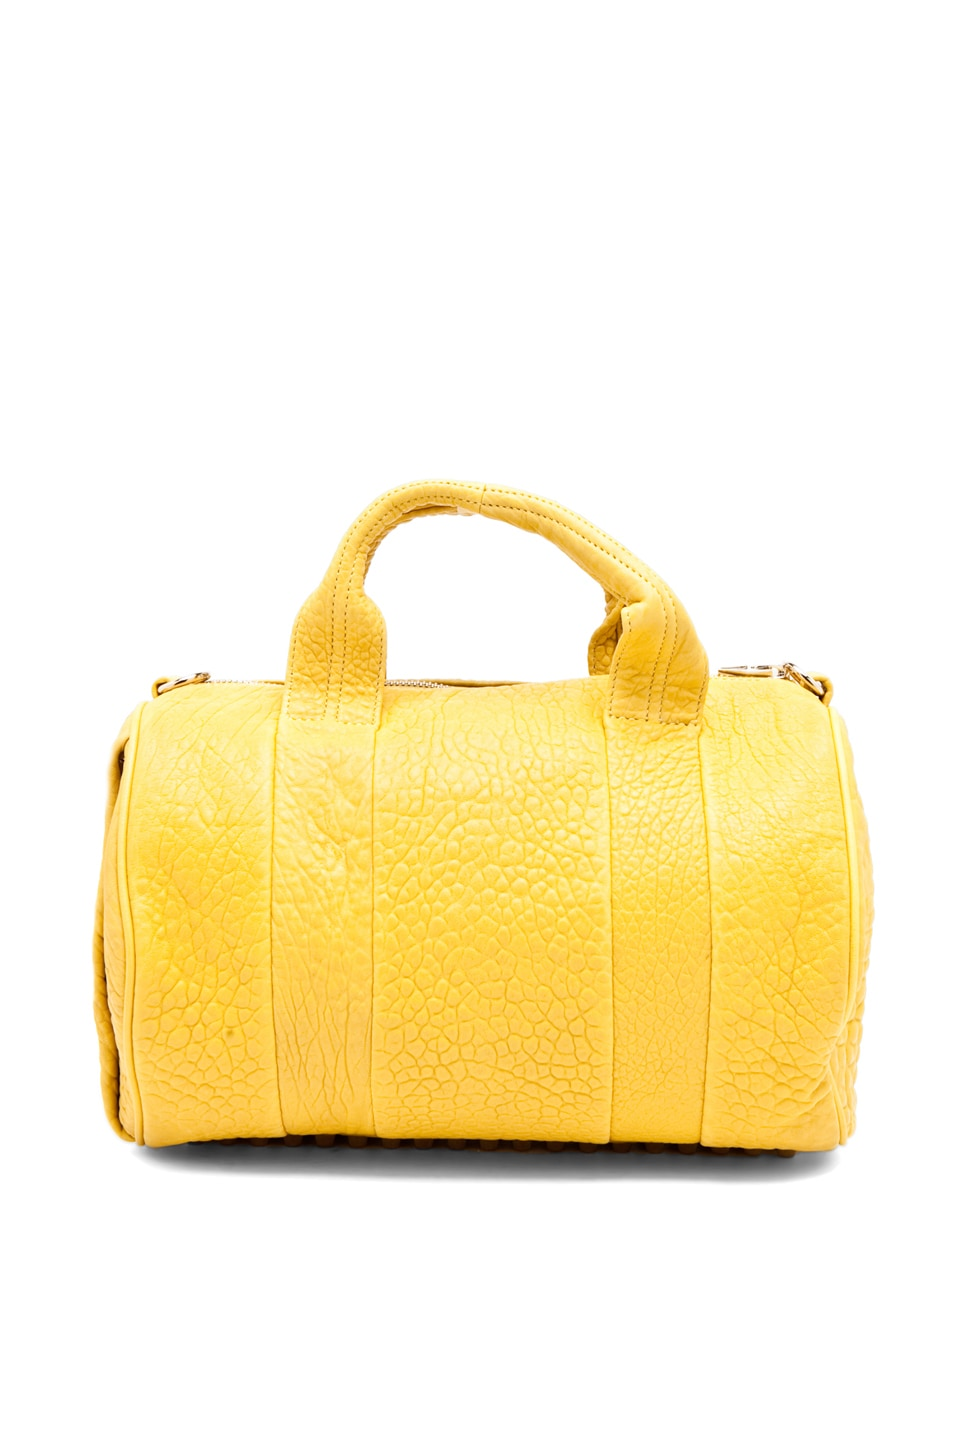 Image 5 of Alexander Wang Rocco Satchel in Citrus